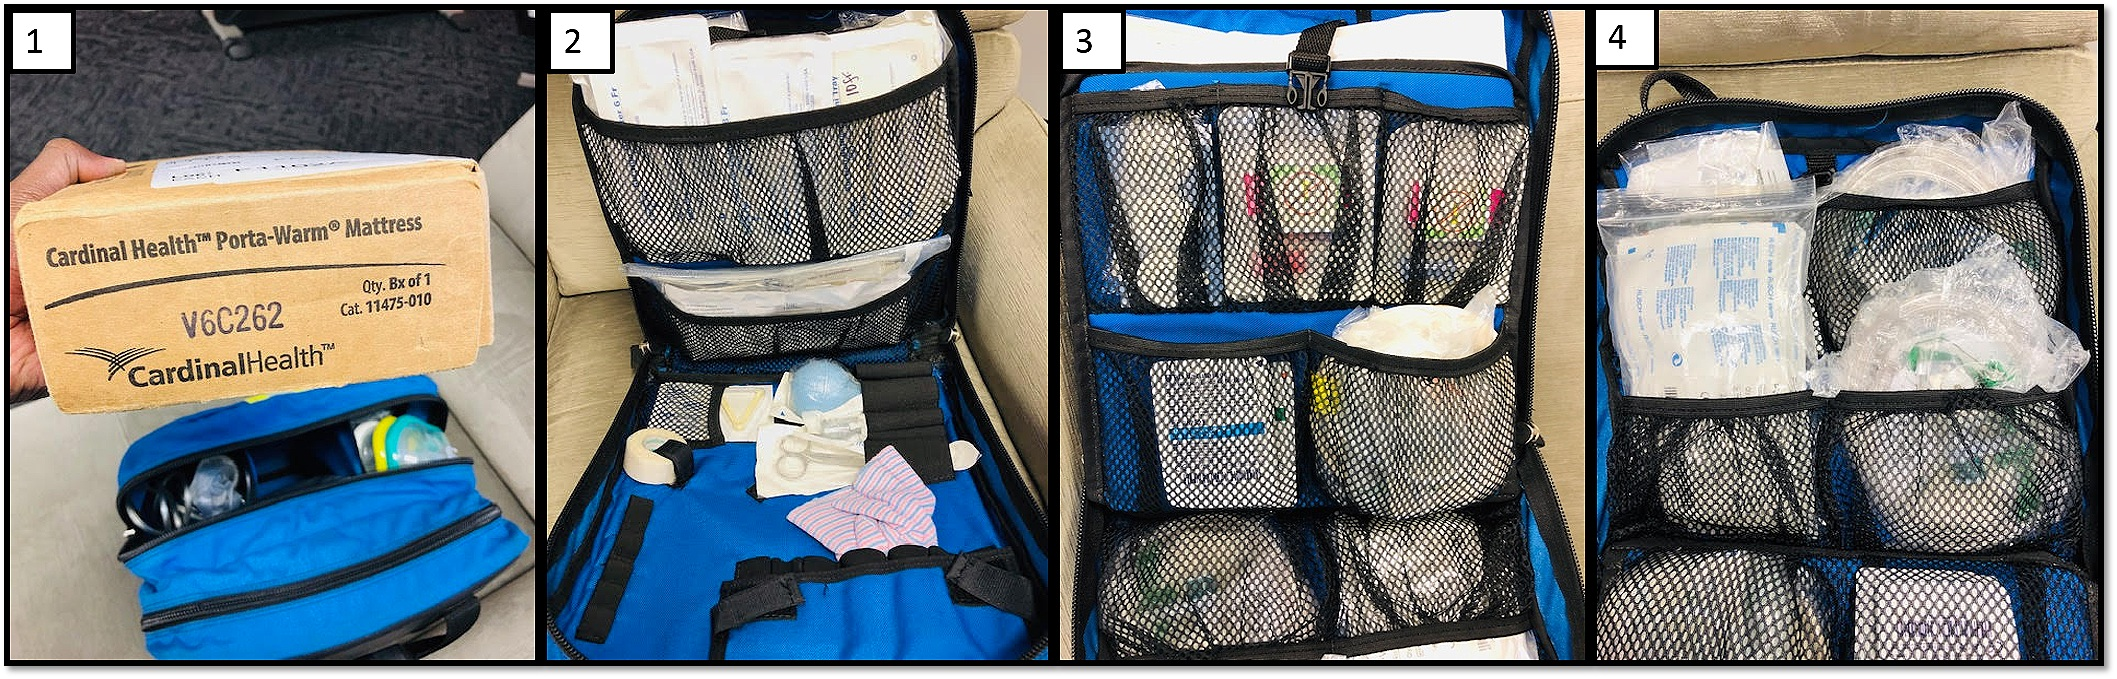 Pediatric Pack: Compartments 1-4 above, start from THE front of the pack and go the the back.